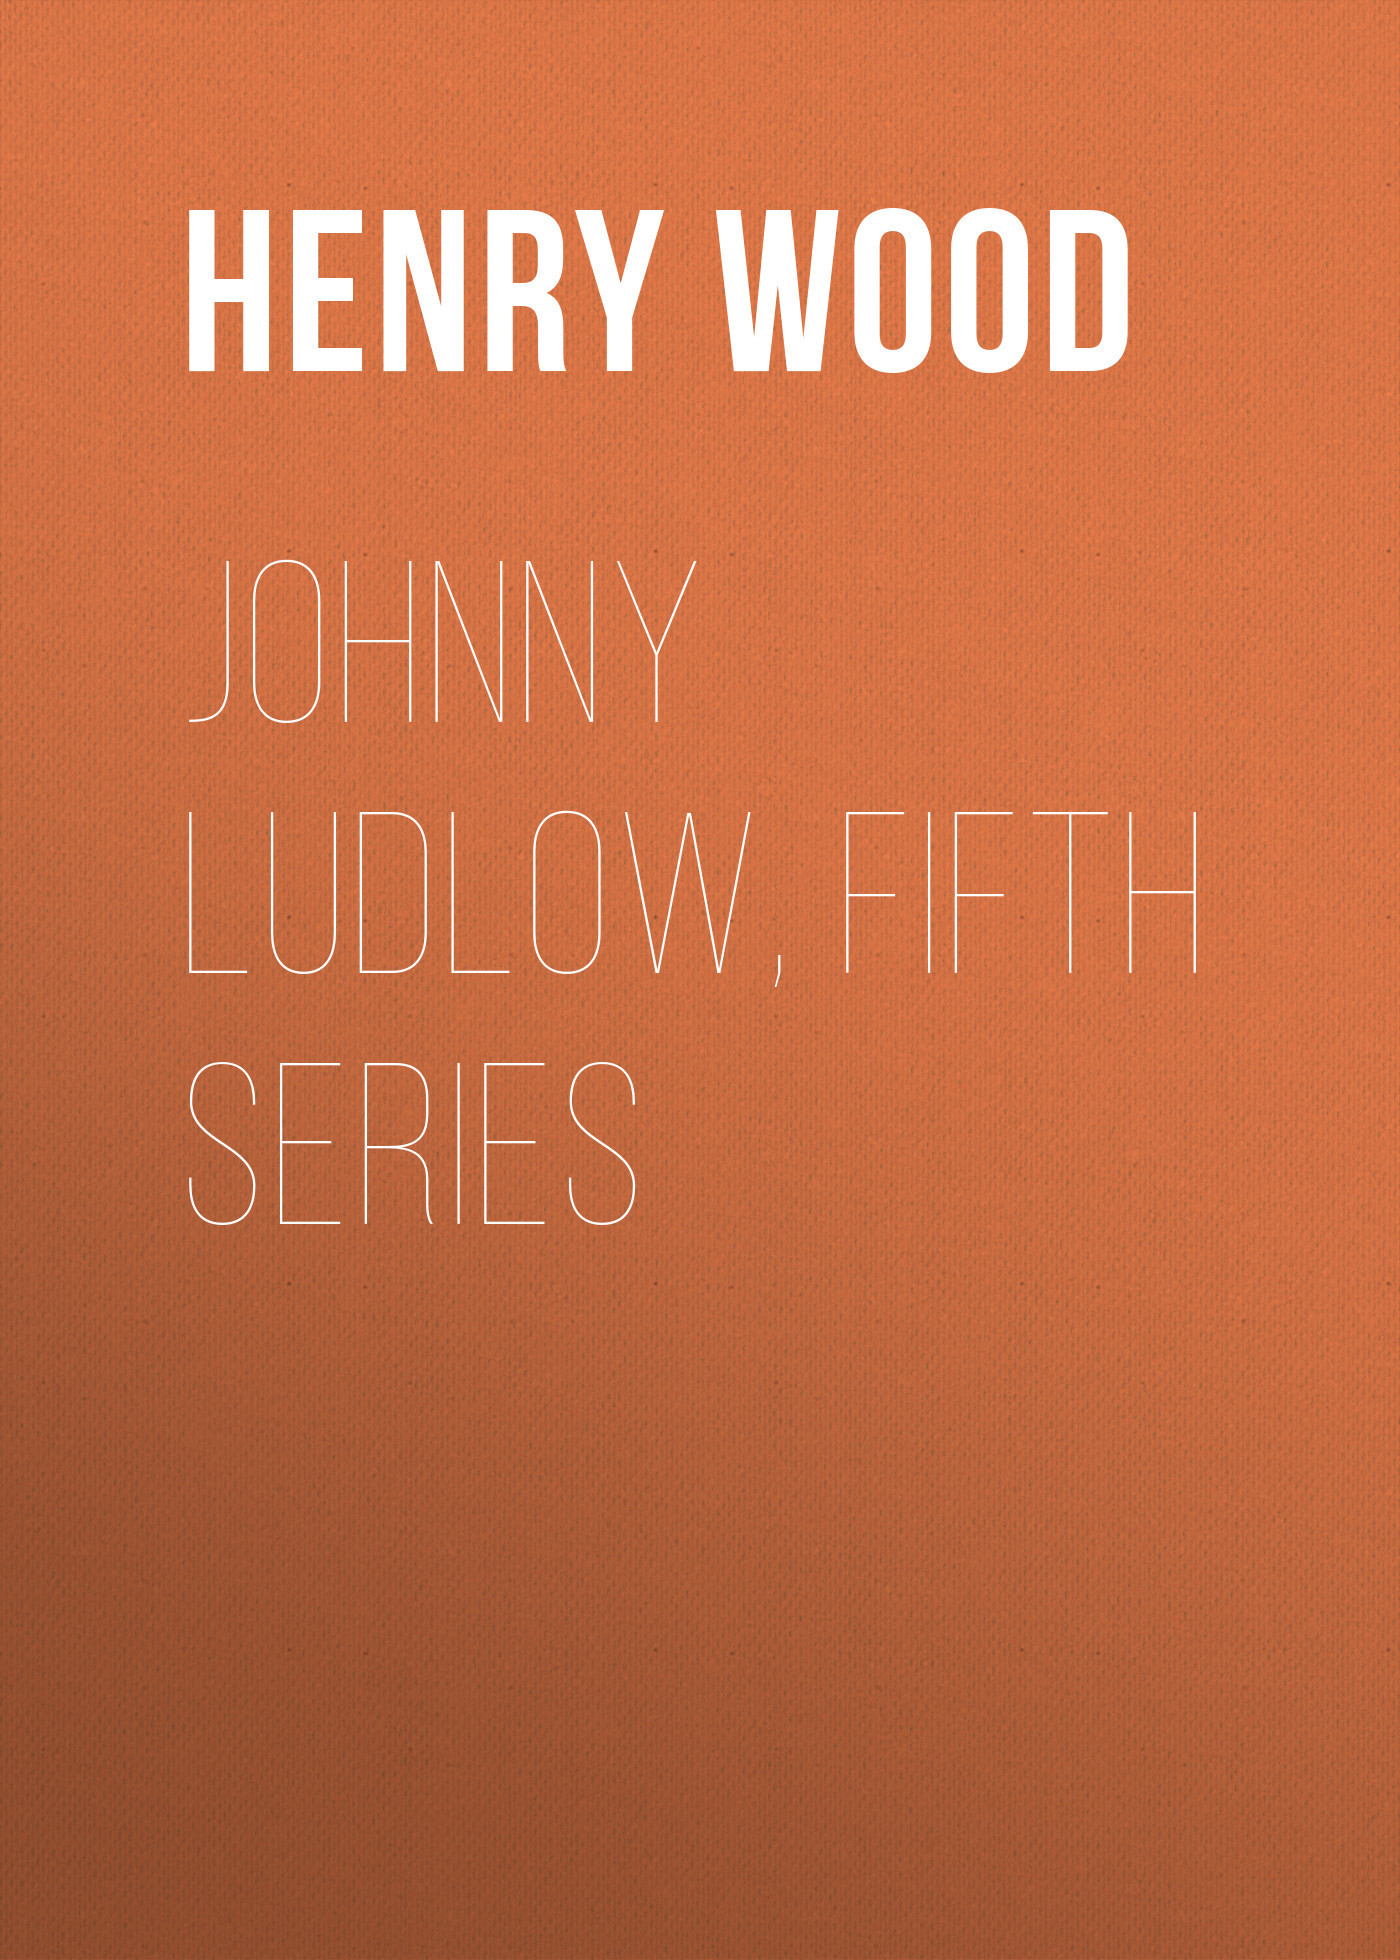 Henry Wood Johnny Ludlow, Fifth Series henry wood east lynne